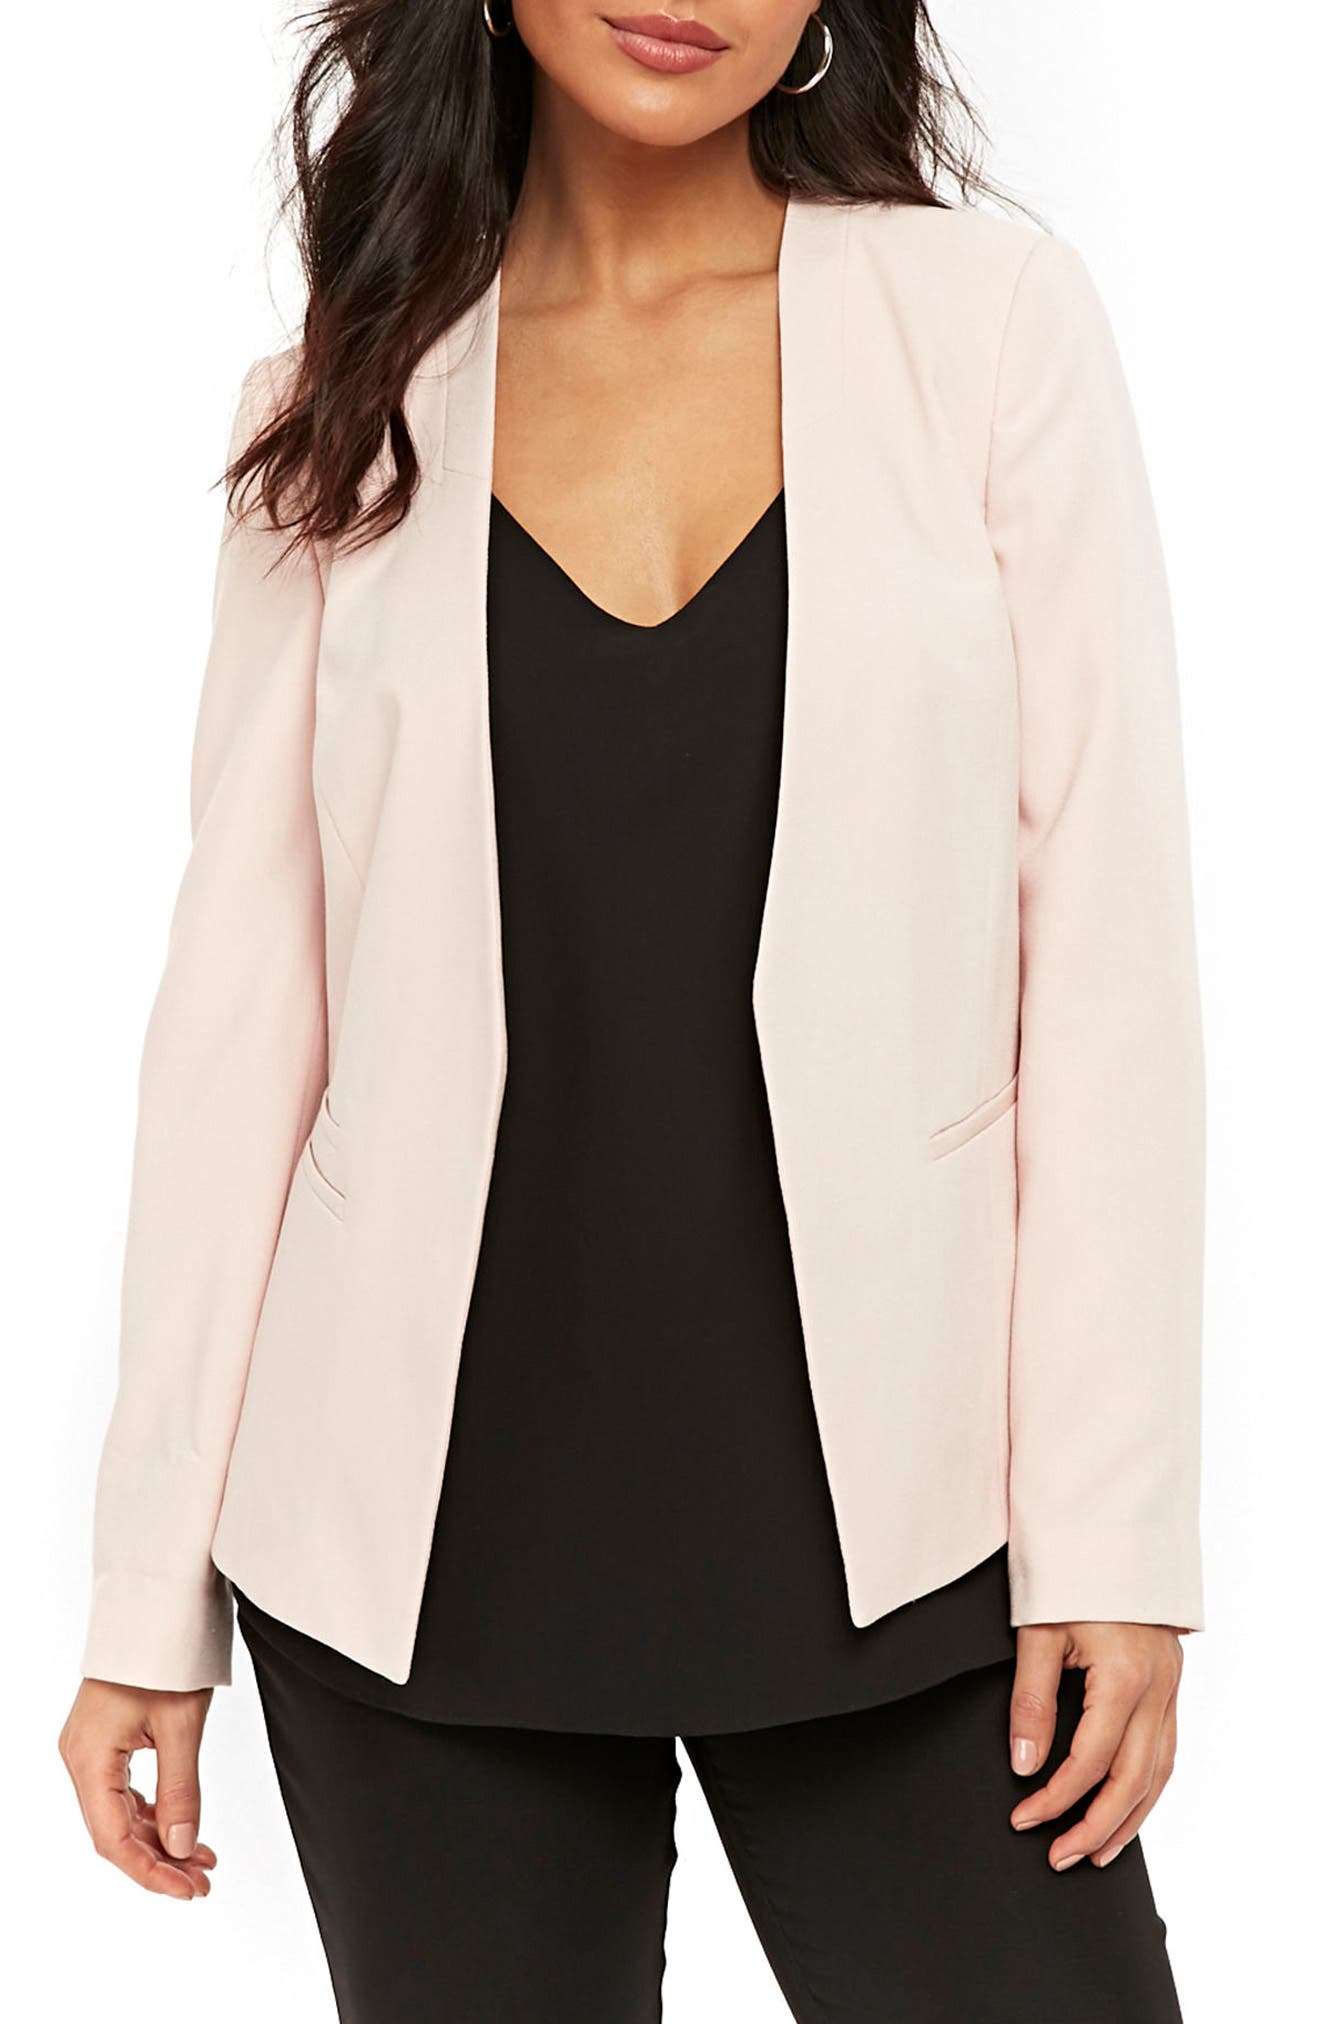 Giglio Edge to Edge Jacket,                             Main thumbnail 1, color,                             Pink